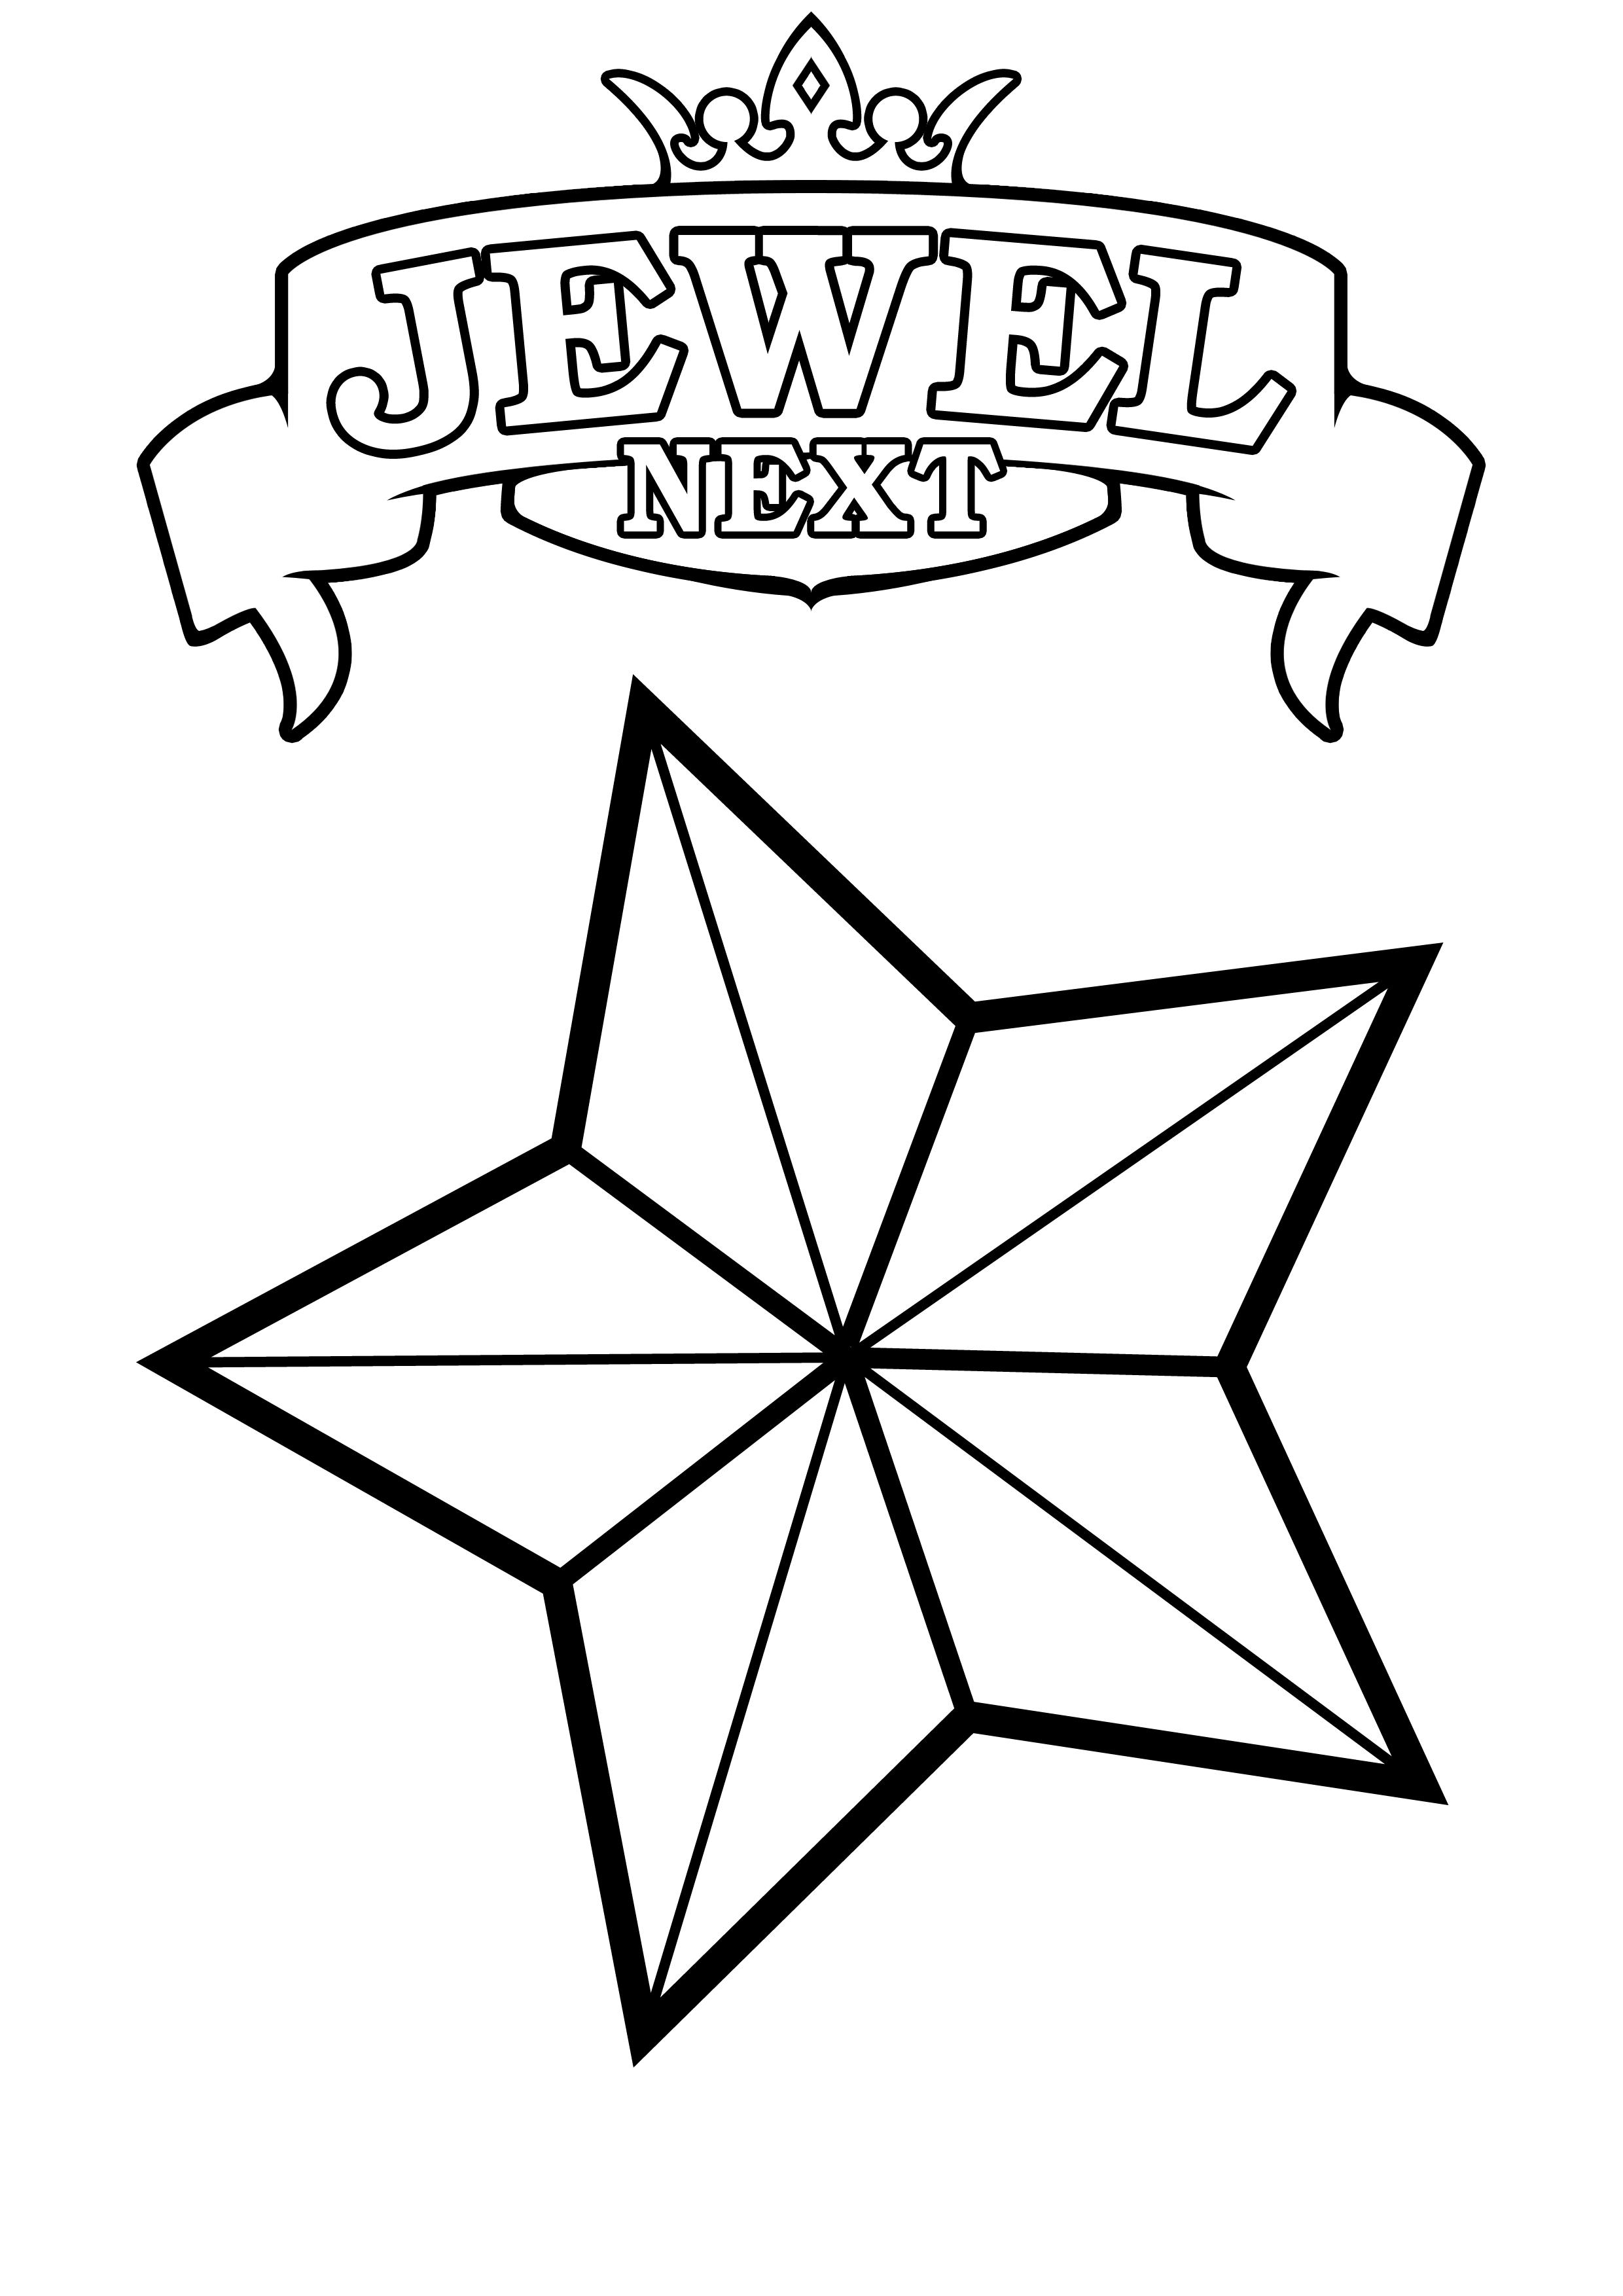 colouring pages stars free printable star coloring pages for kids cool2bkids pages colouring stars